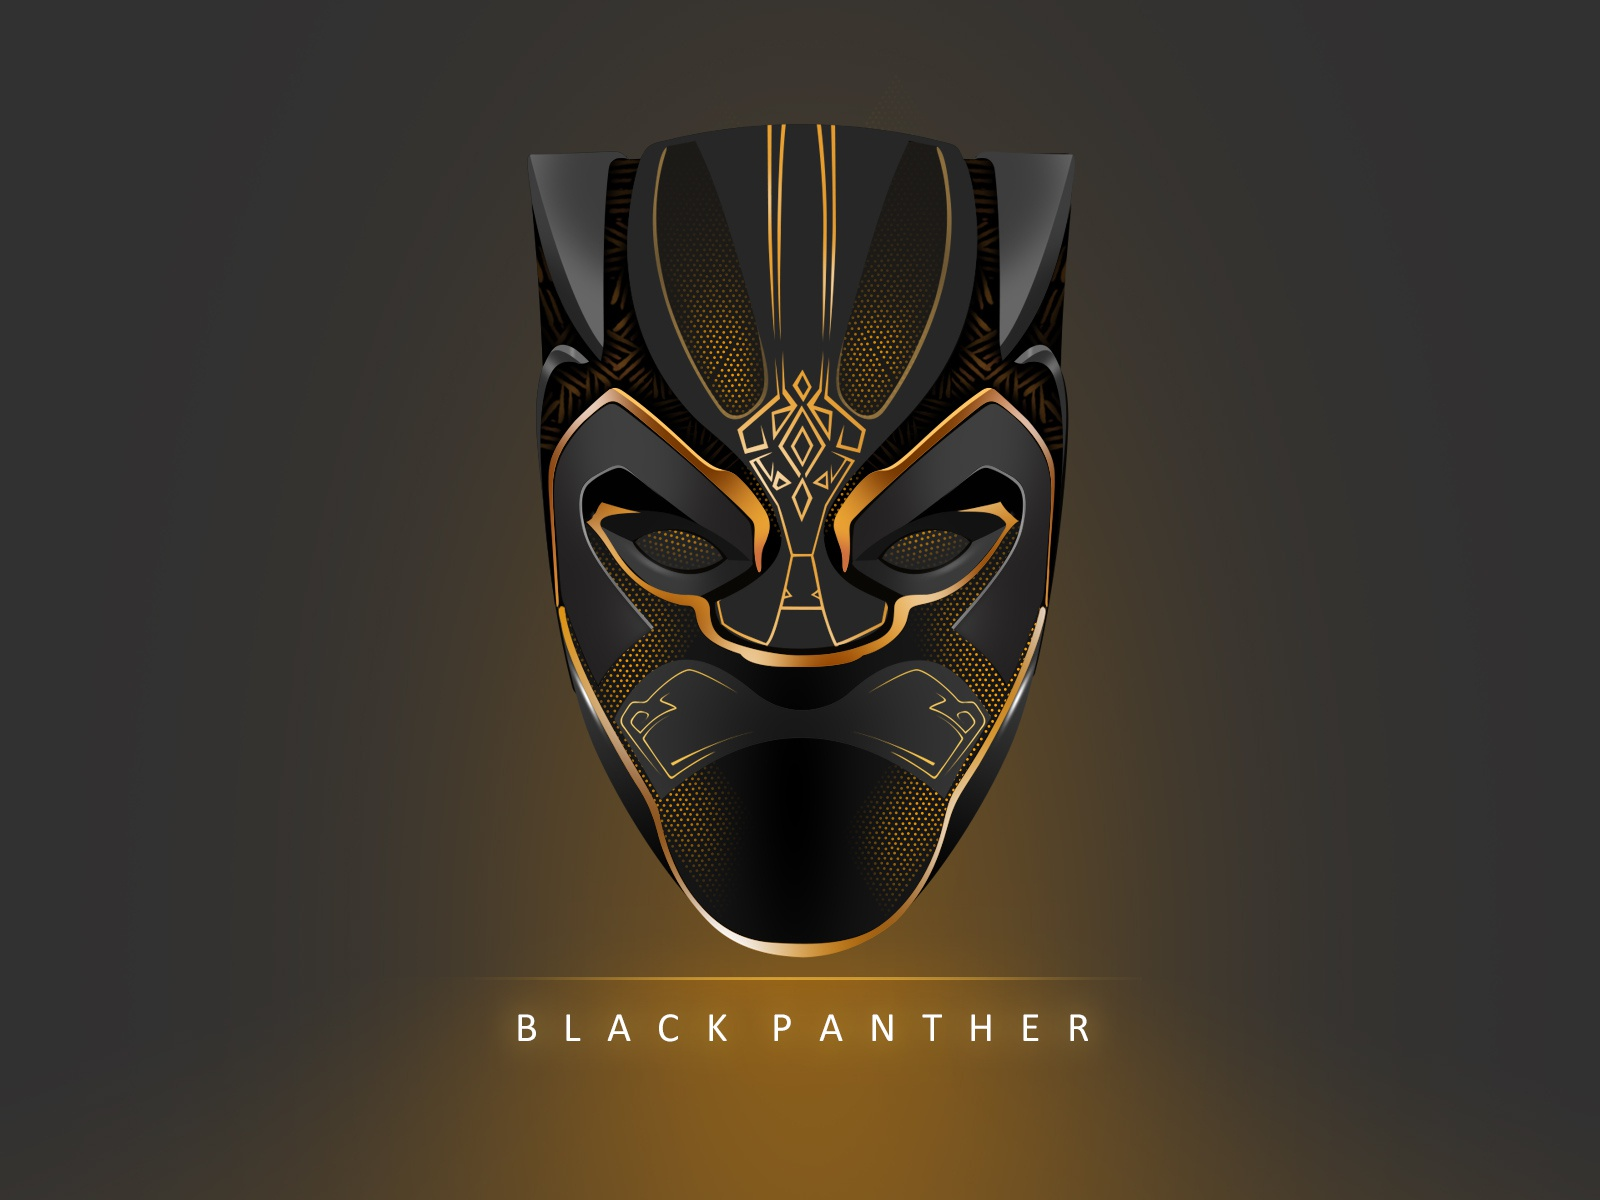 Black Panther Rip By Rohith On Dribbble